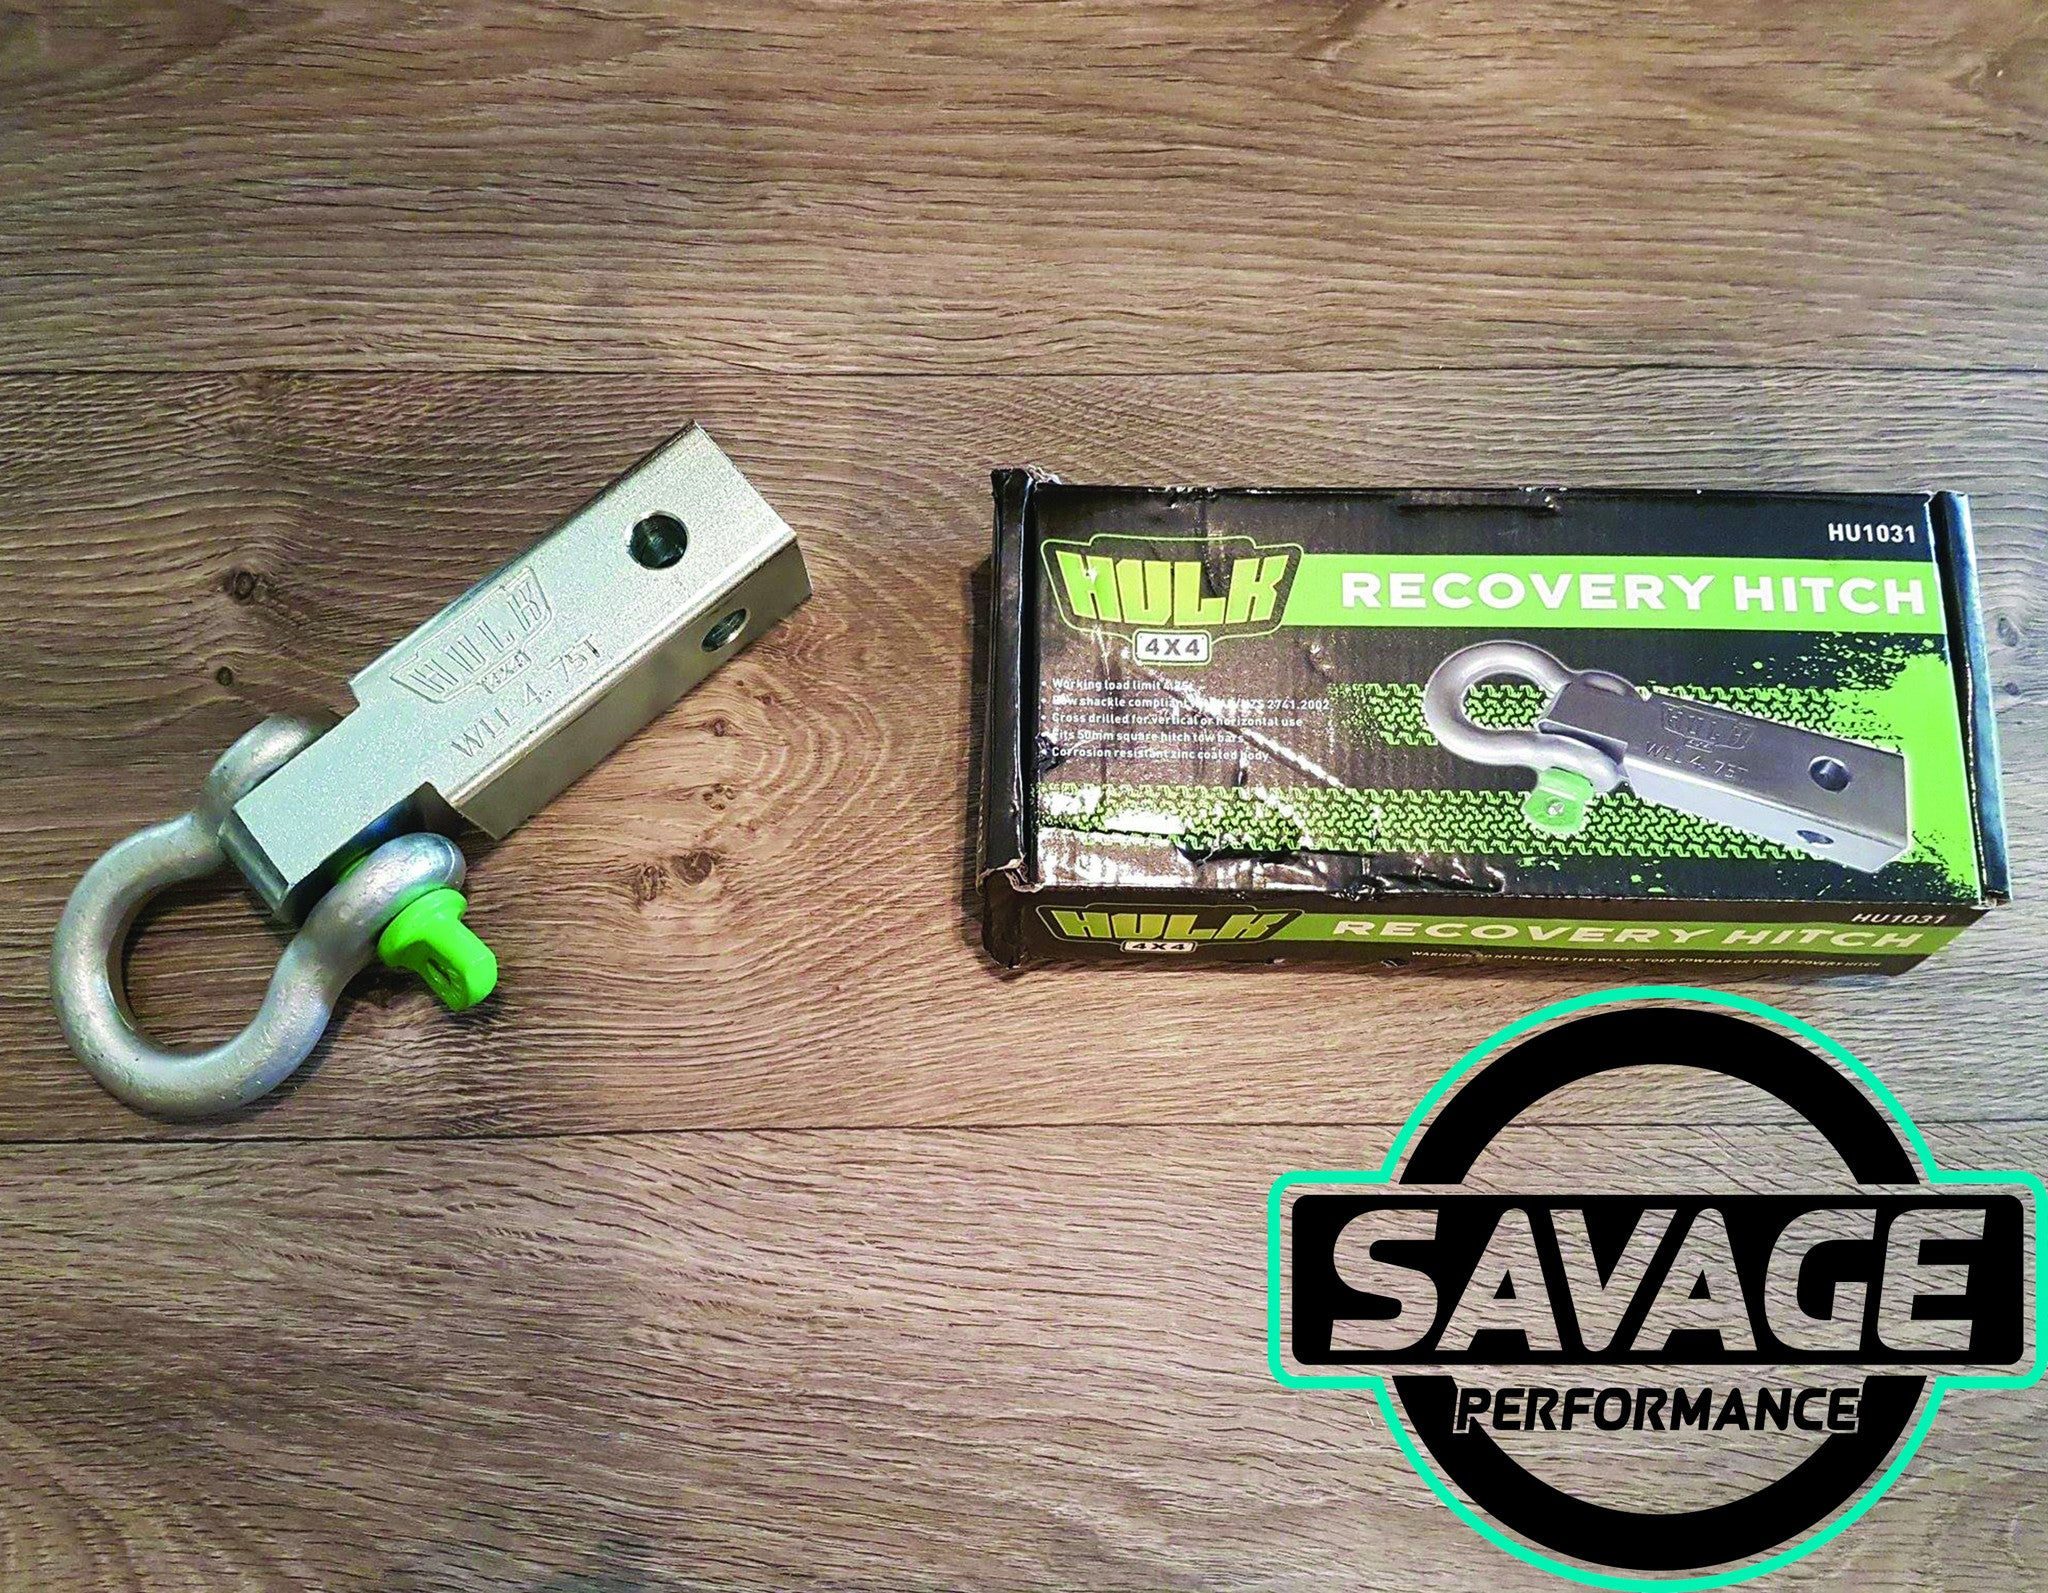 Hulk 4x4 Recovery Hitch 185mm with Bow Shackle *Savage Performance*